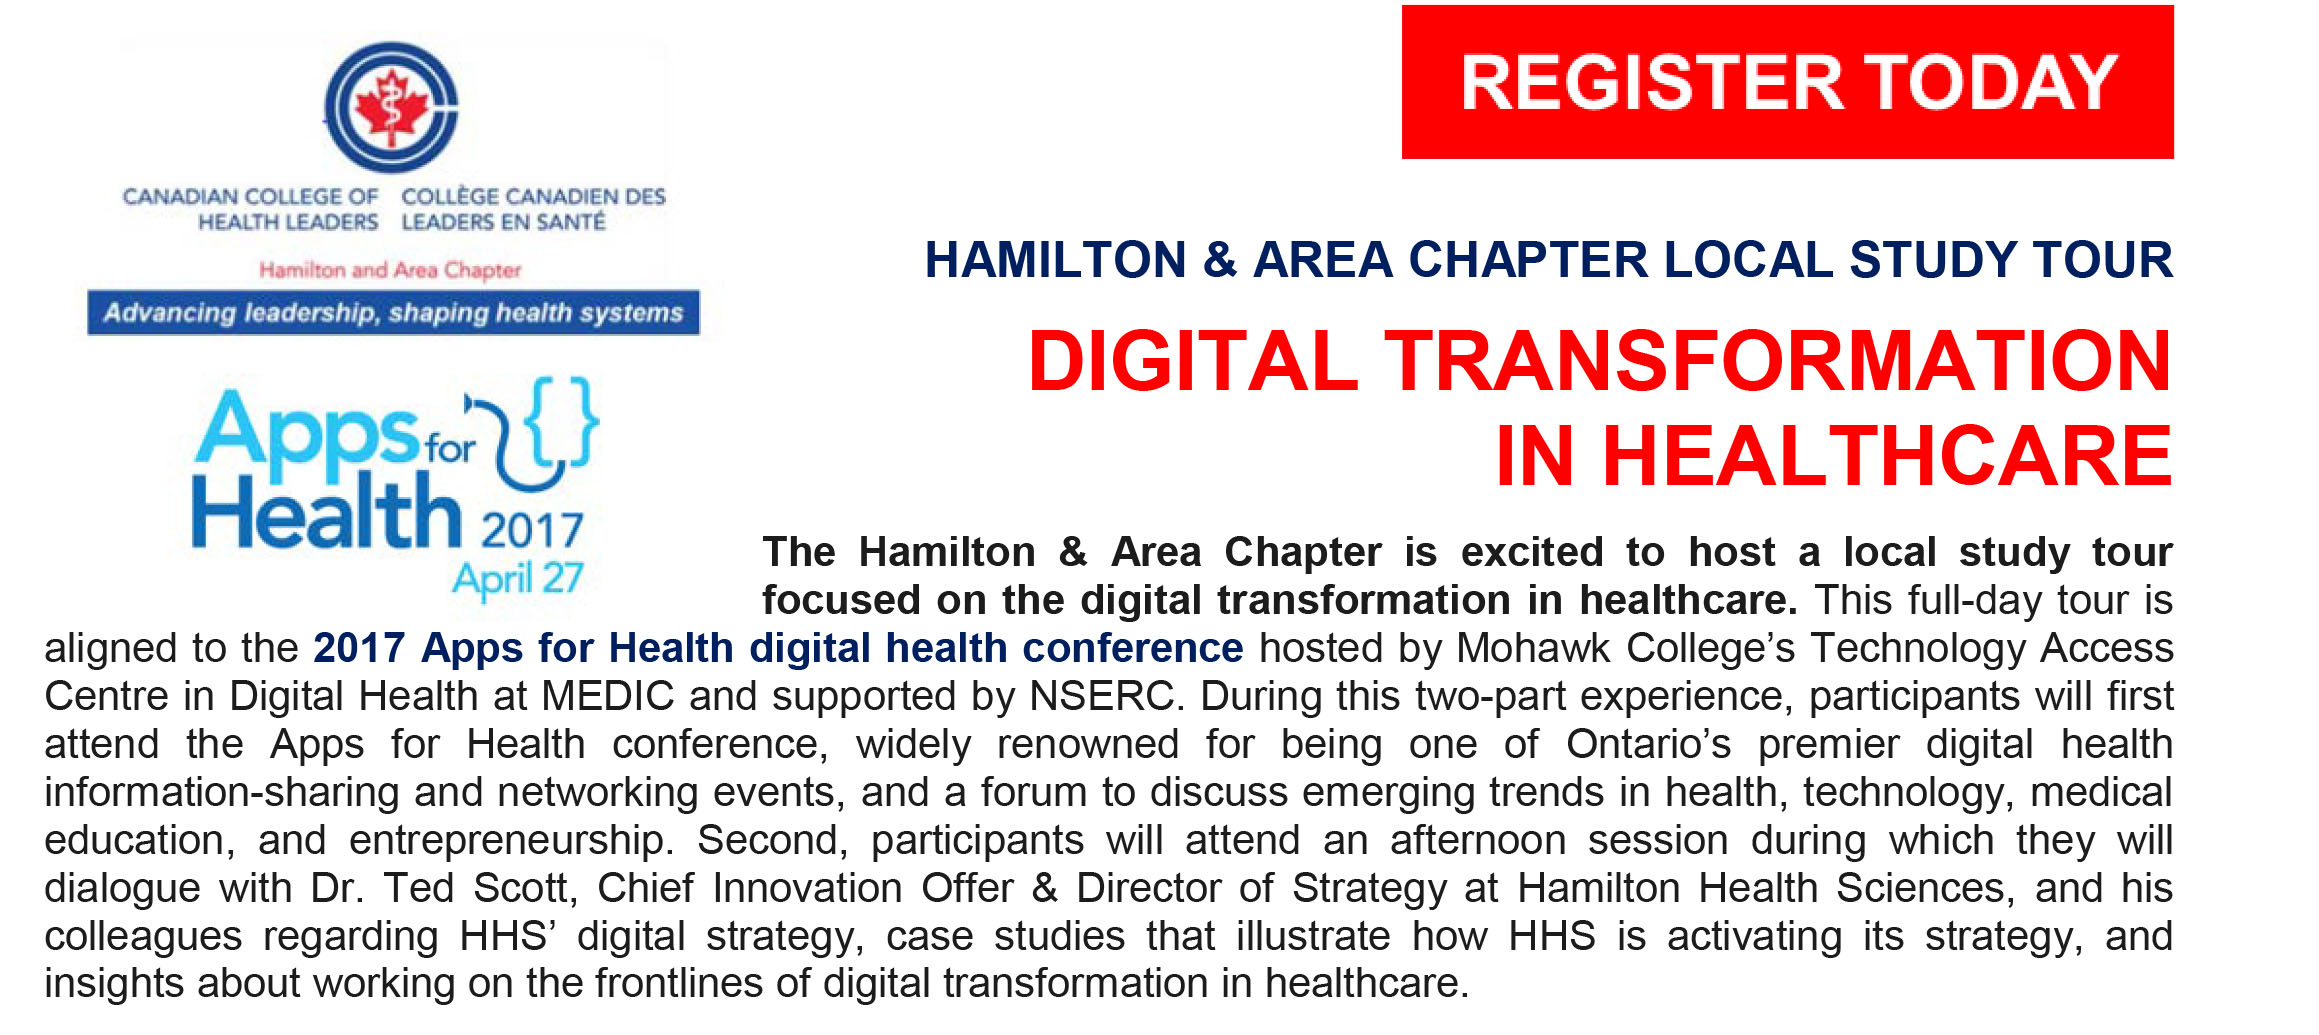 Cchl Ccls The Canadian College Of Health Leaders Hamilton And